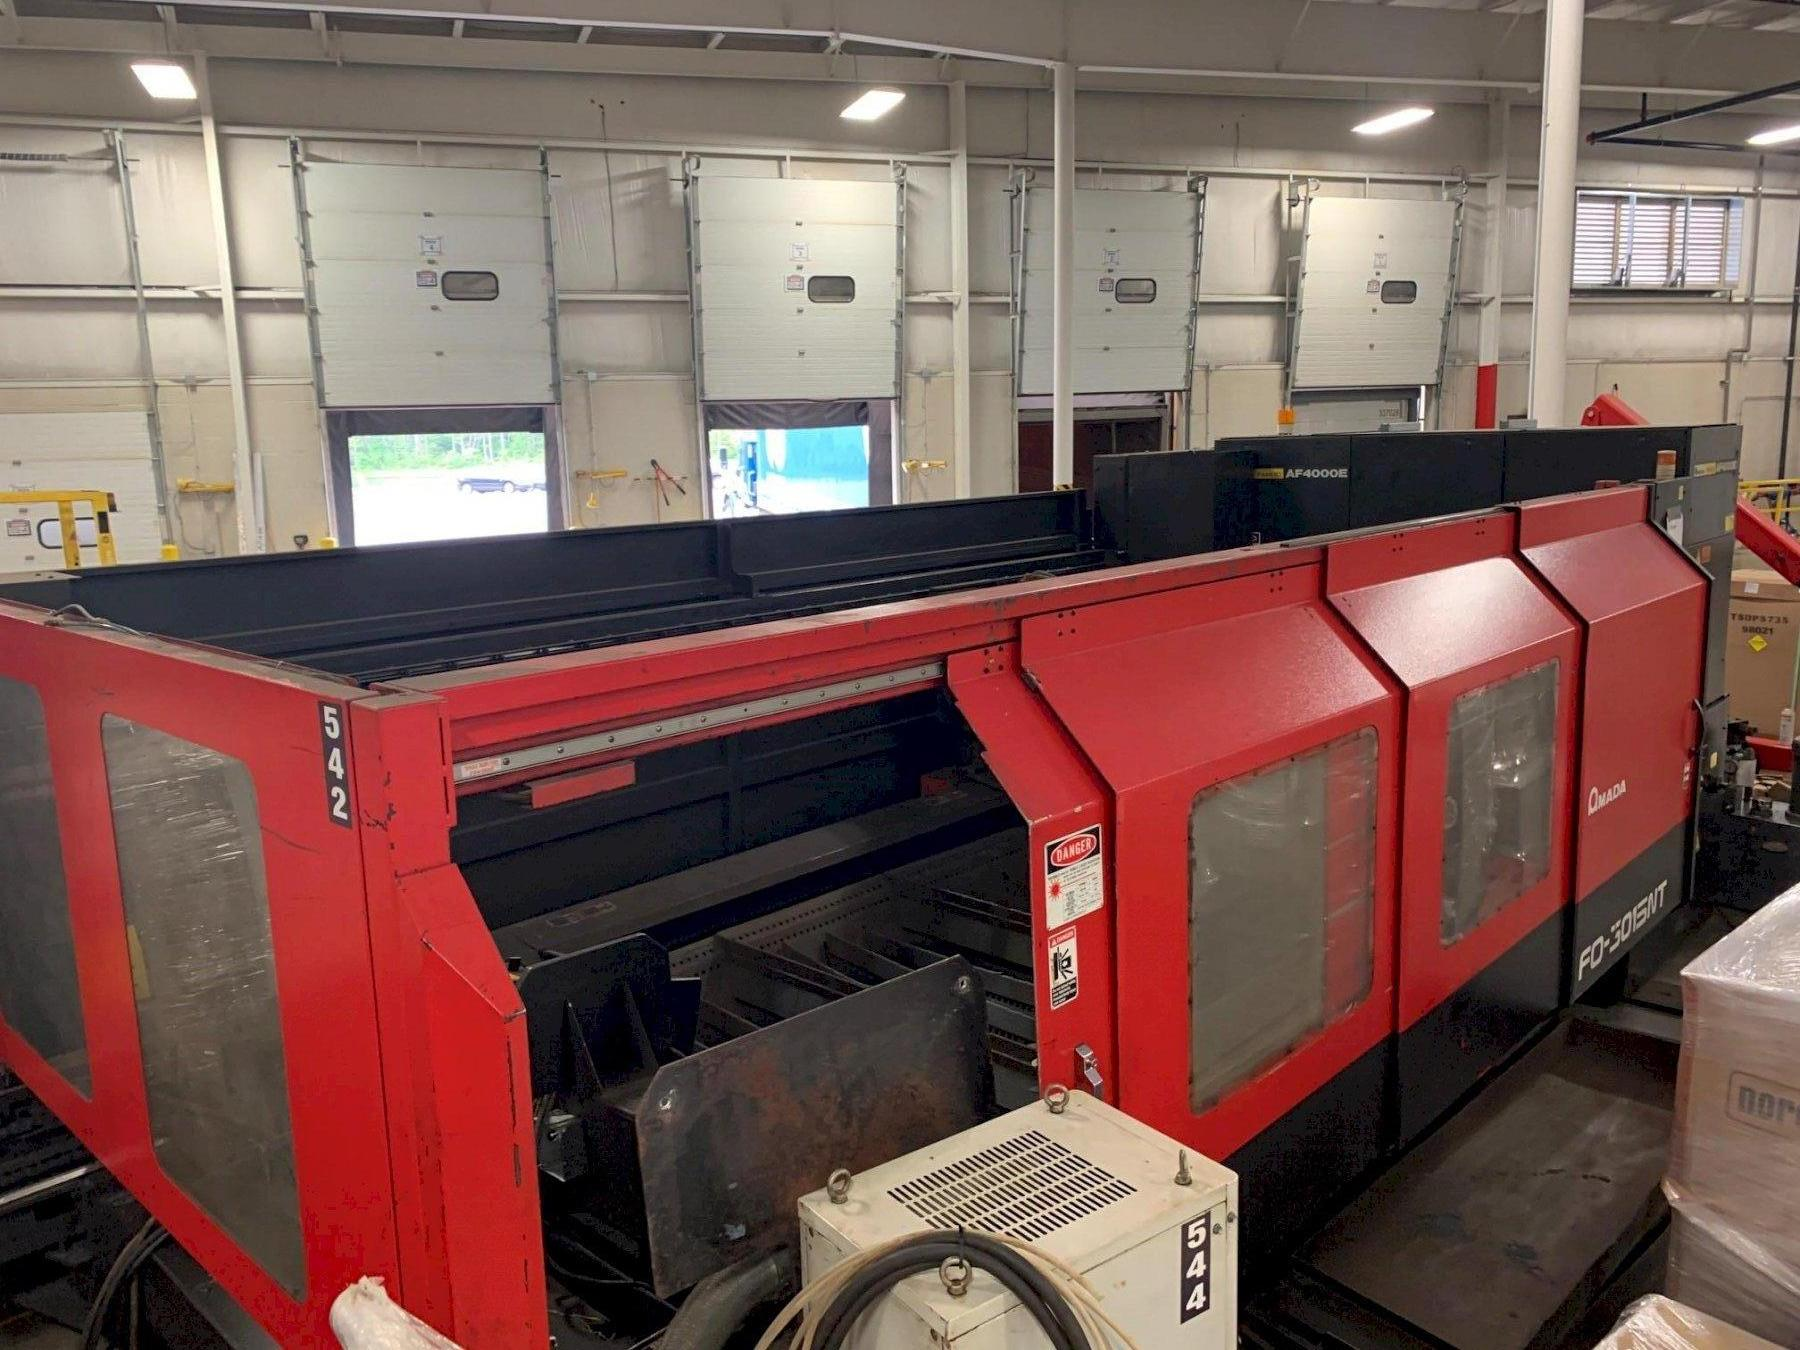 "4000 Watt x 60"" x 120"" AMADA LASER CUTTING CELL WITH SHUTTLE TABLE: STOCK 13180"